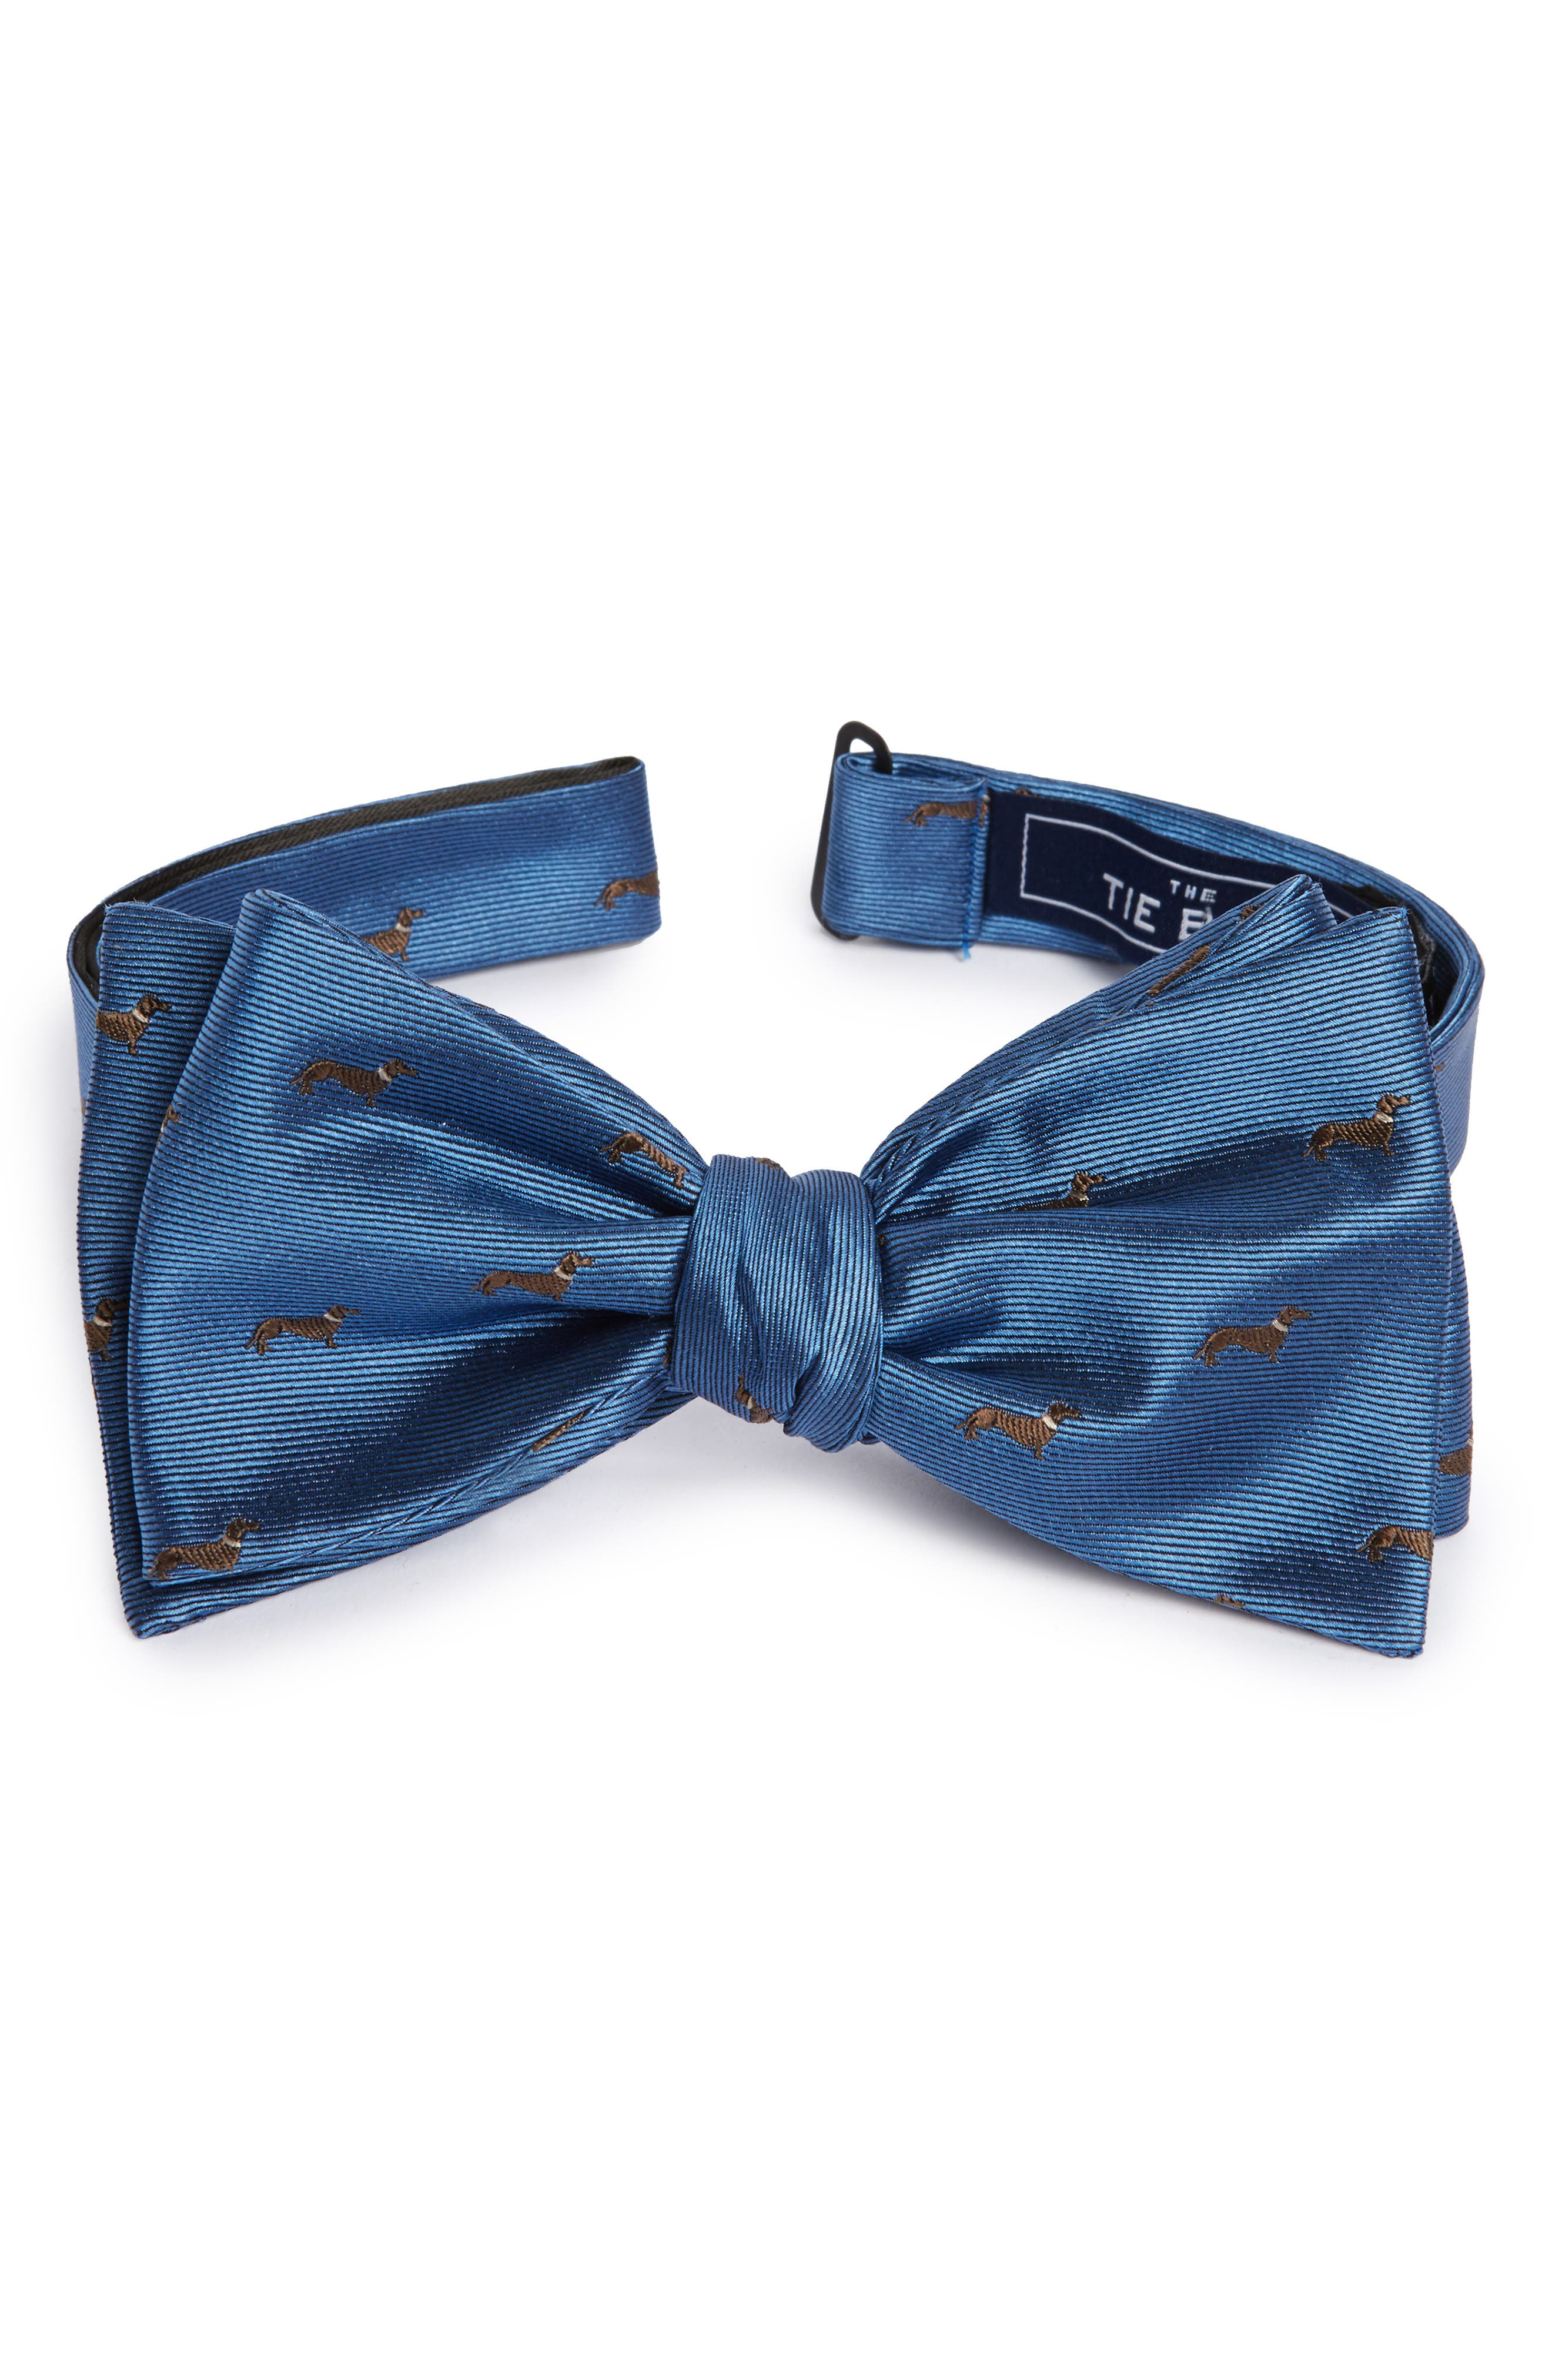 The Tie Bar Dog Days Silk Bow Tie